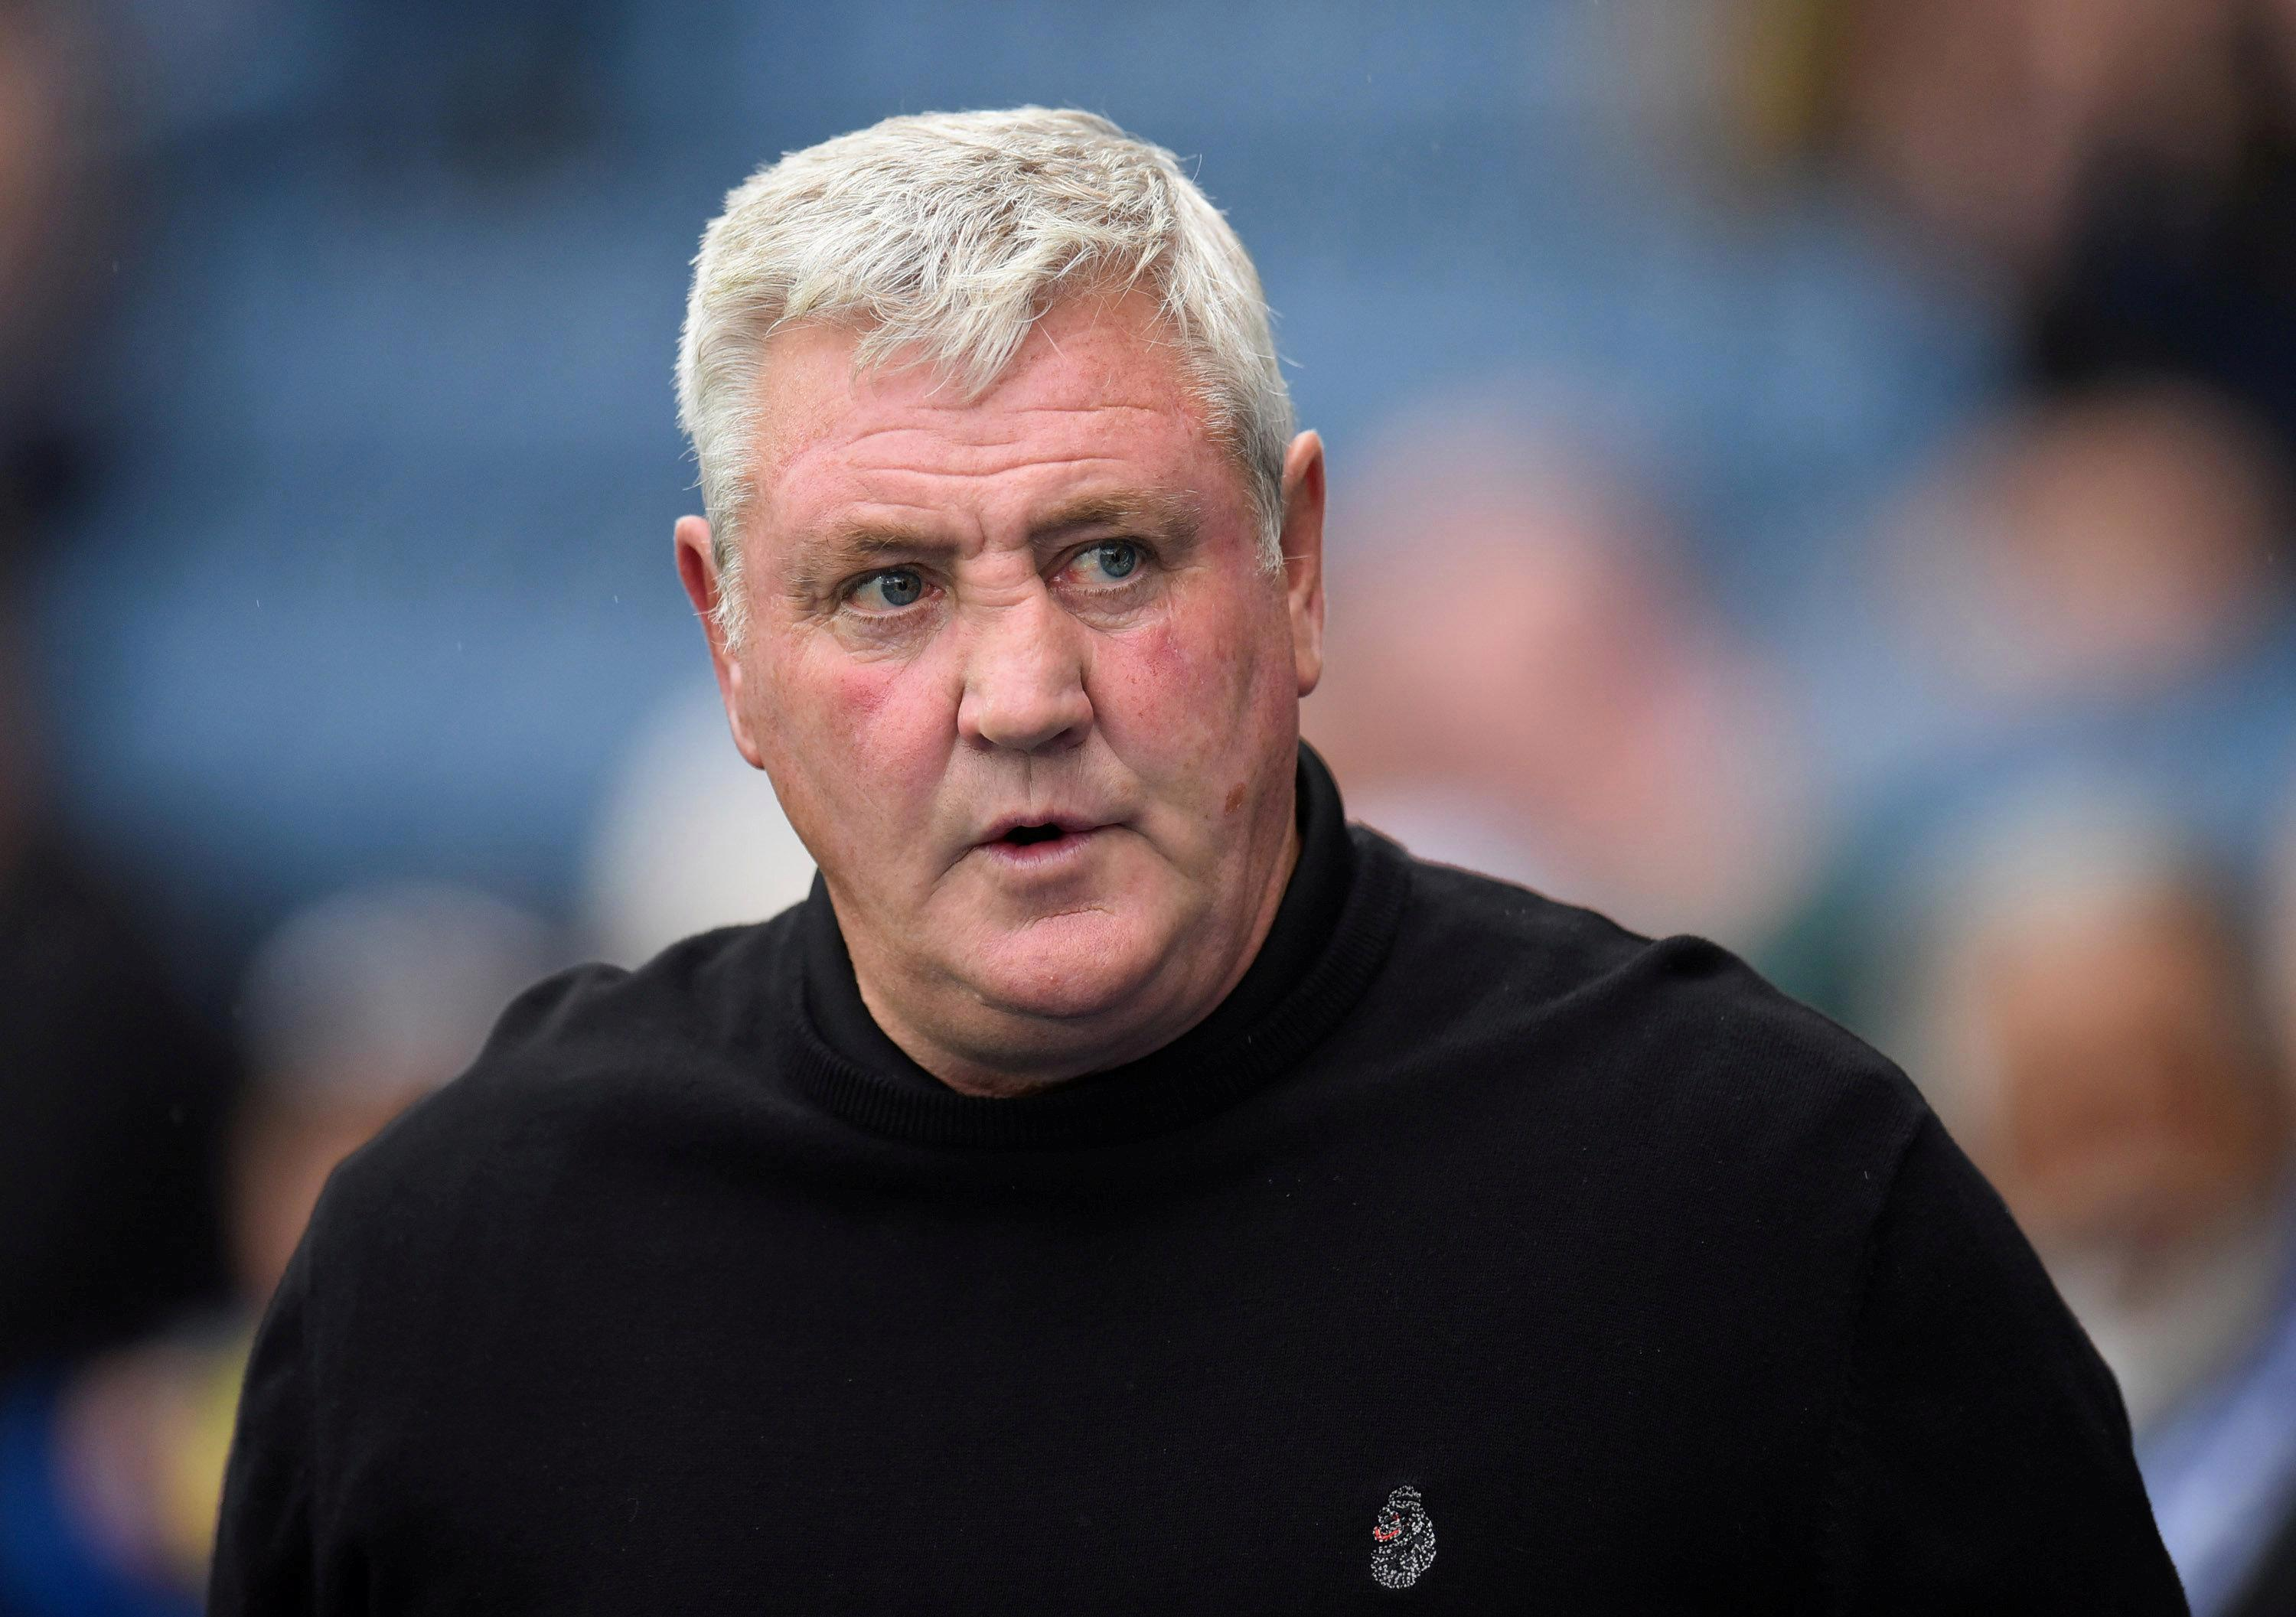 Next Reading manager: Steve Bruce is early favourite to replace Paul Clement